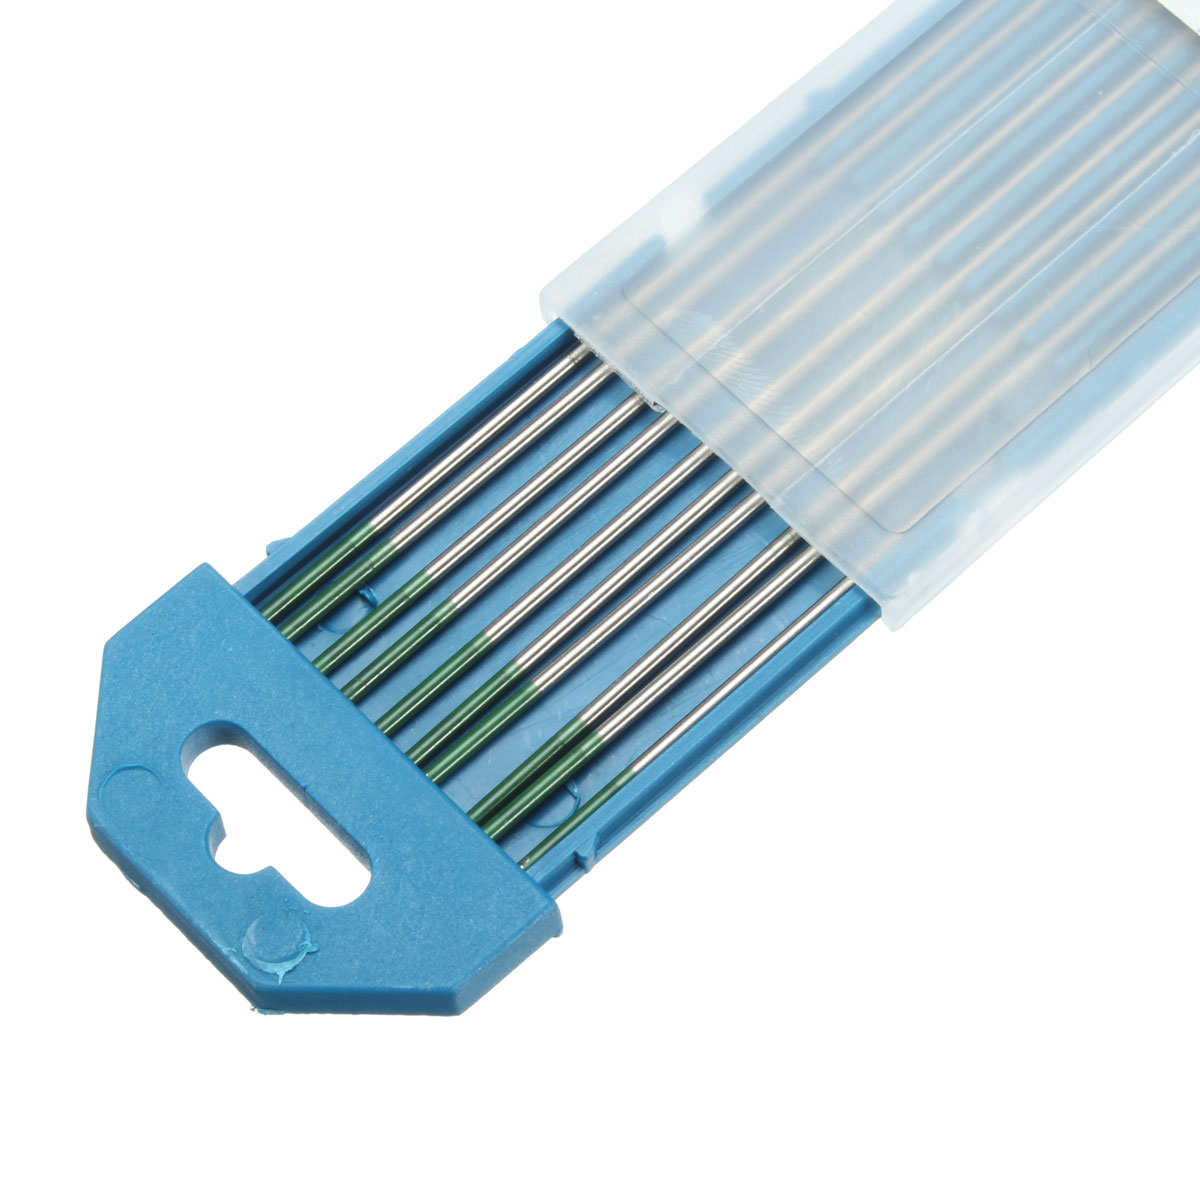 Green Tip Pure Tungsten Electrode for TIG Welding 10PK  1